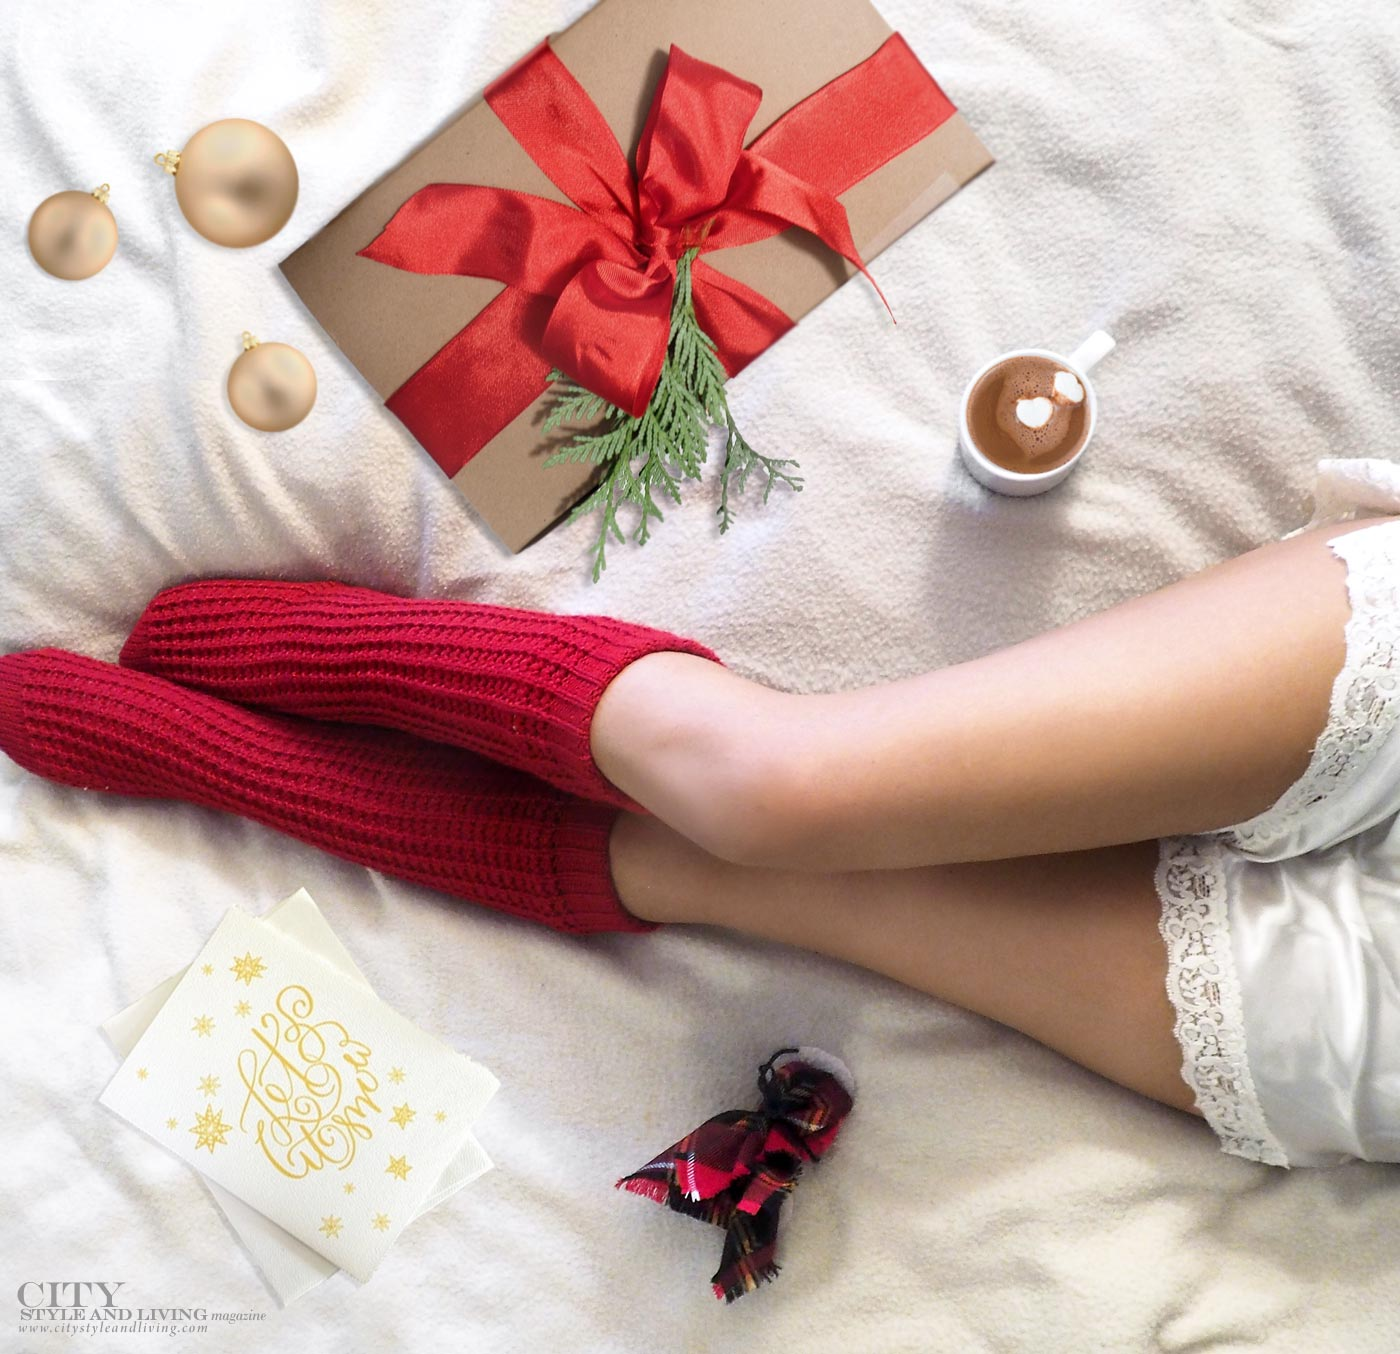 city style and living magazinegift giving etiquette